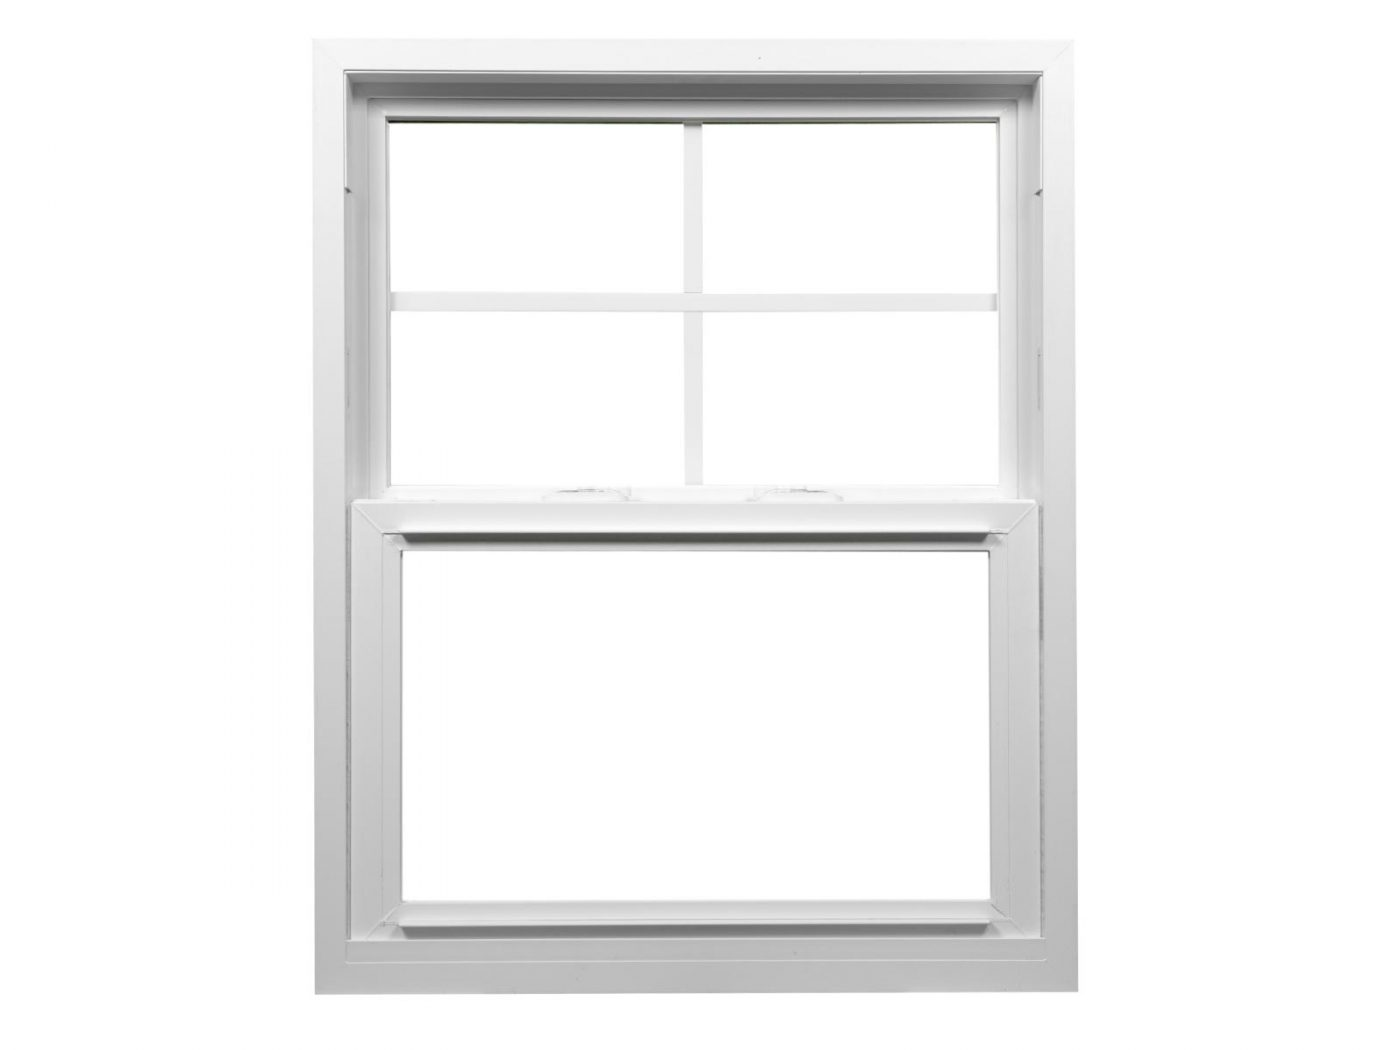 seattle Signature series single hung window installation sales